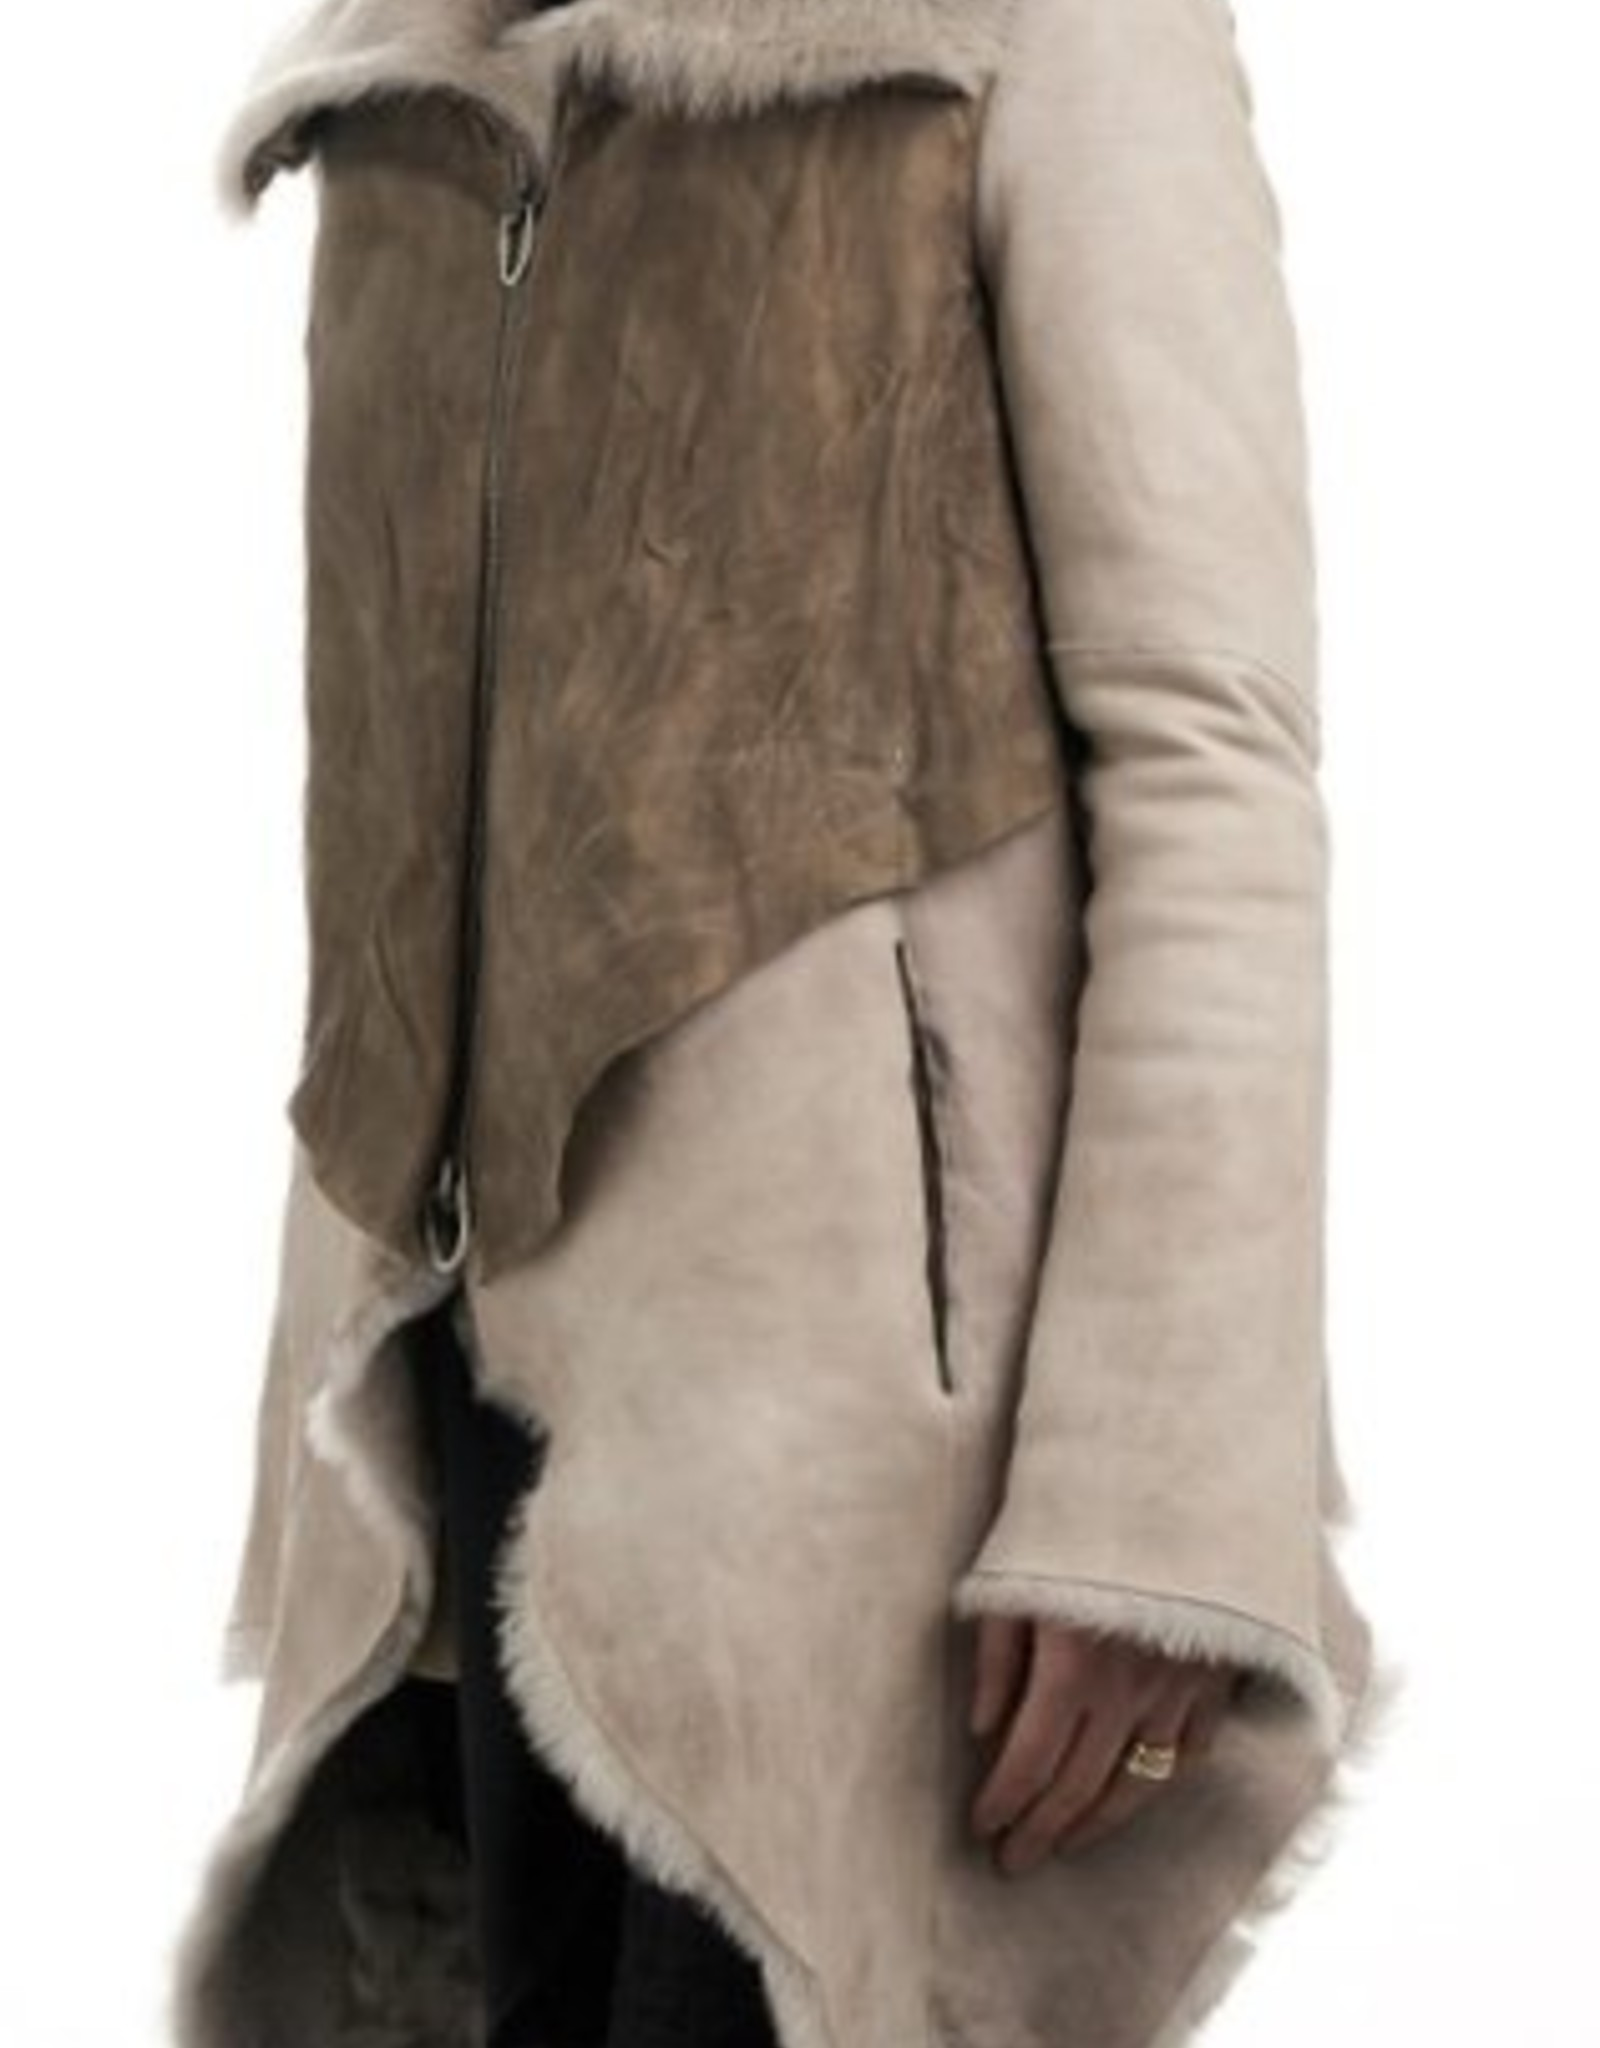 NESTI SH - shearling and bull jacket in Dove Grey and Taupe